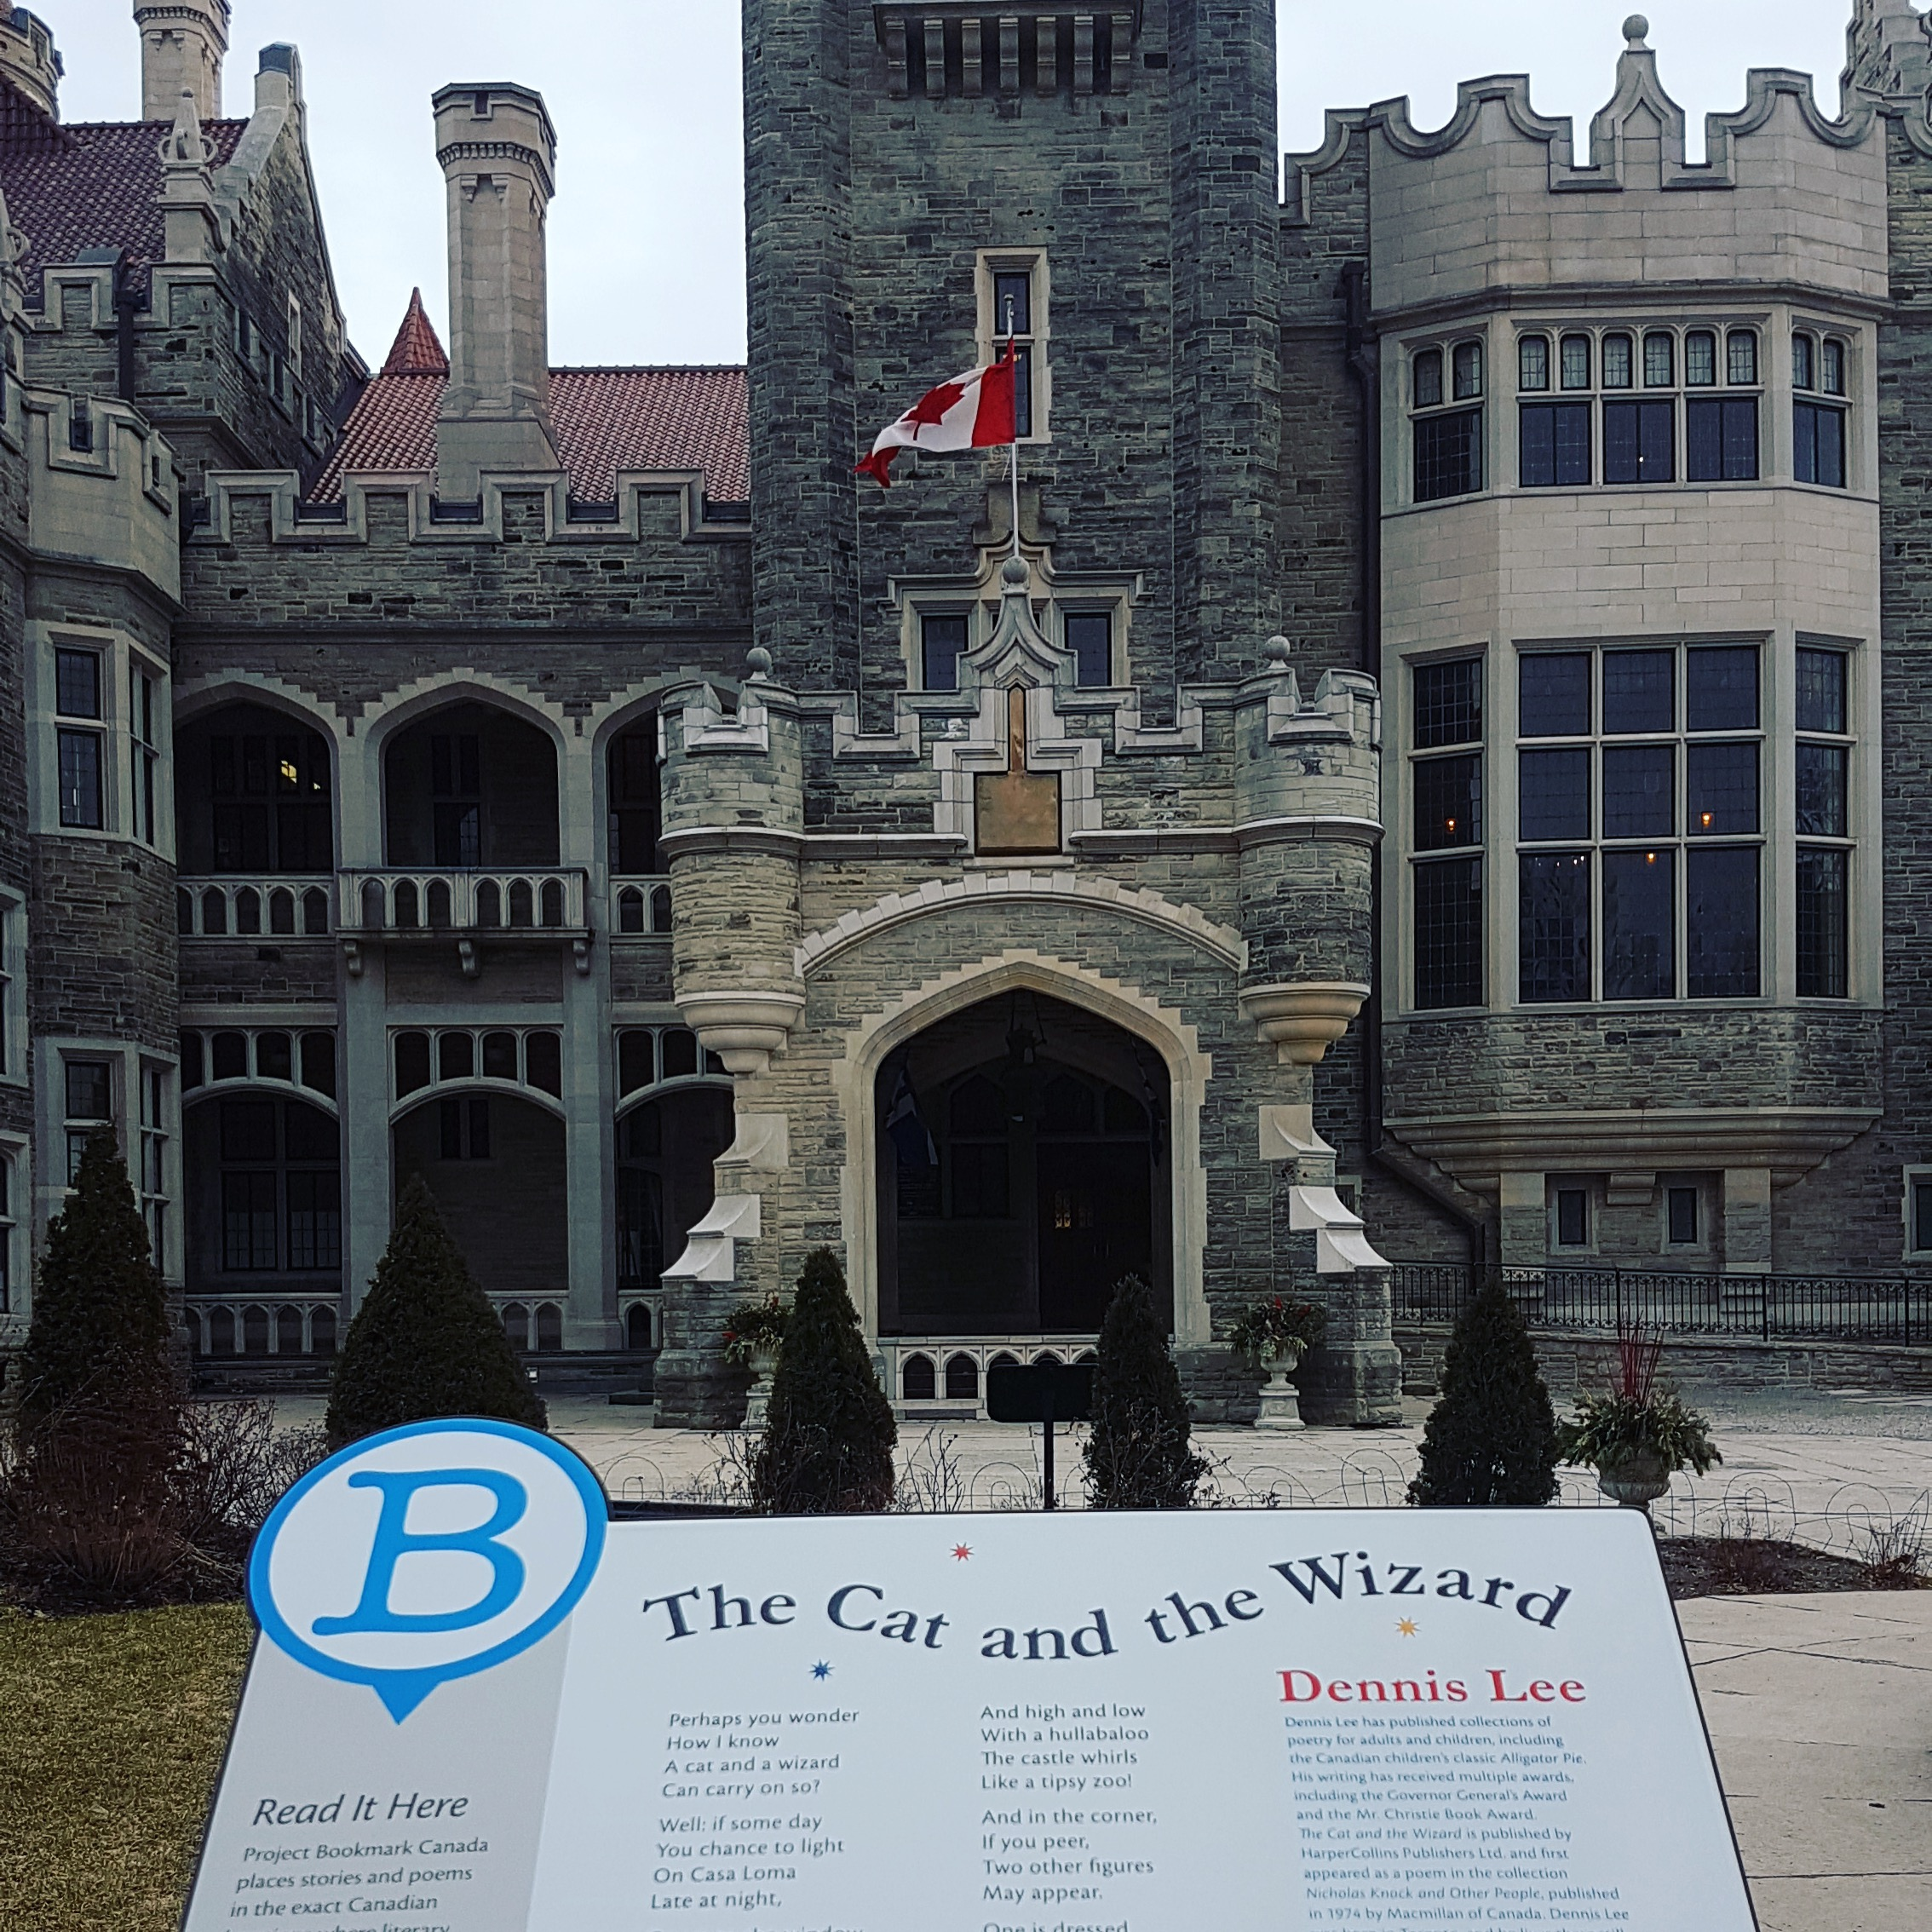 - Our most recent plaque is at Casa Loma commemorating Dennis Lee's The Cat and the Wizard with illustrations by Gillian Johnson. Our first children's Bookmark, this site also has a special exhibit with readings by Dennis Lee and animations by Accounts and Records.